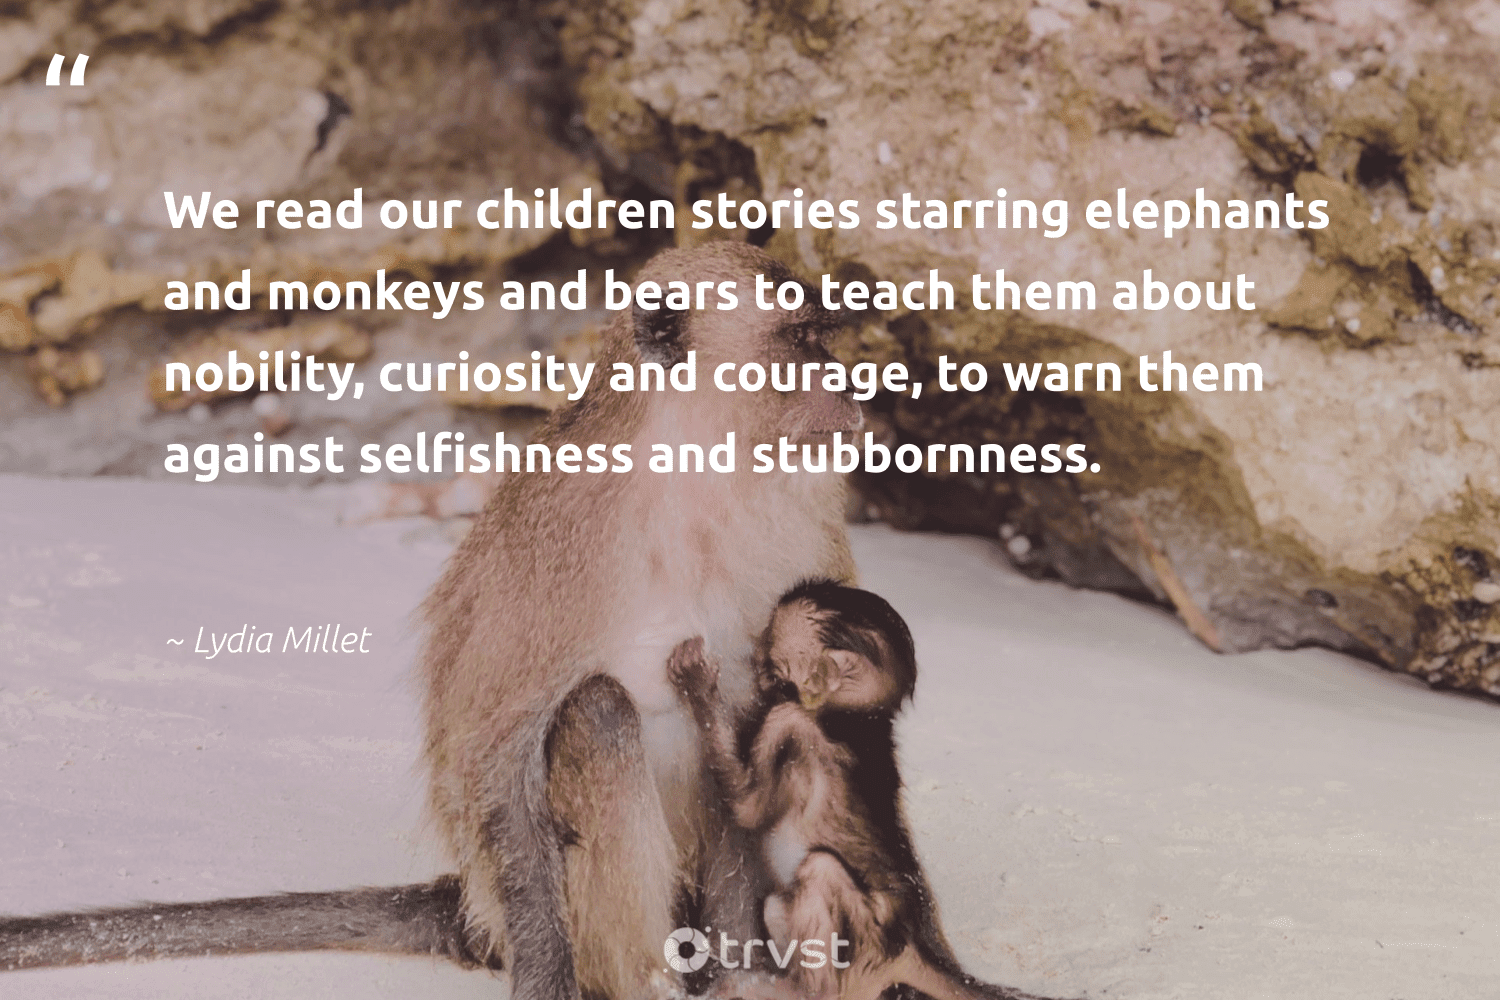 """""""We read our children stories starring elephants and monkeys and bears to teach them about nobility, curiosity and courage, to warn them against selfishness and stubbornness.""""  - Lydia Millet #trvst #quotes #children #elephants #monkeys #bears #monkey #dogood #animalphotography #changetheworld #wildlifeprotection #takeaction"""